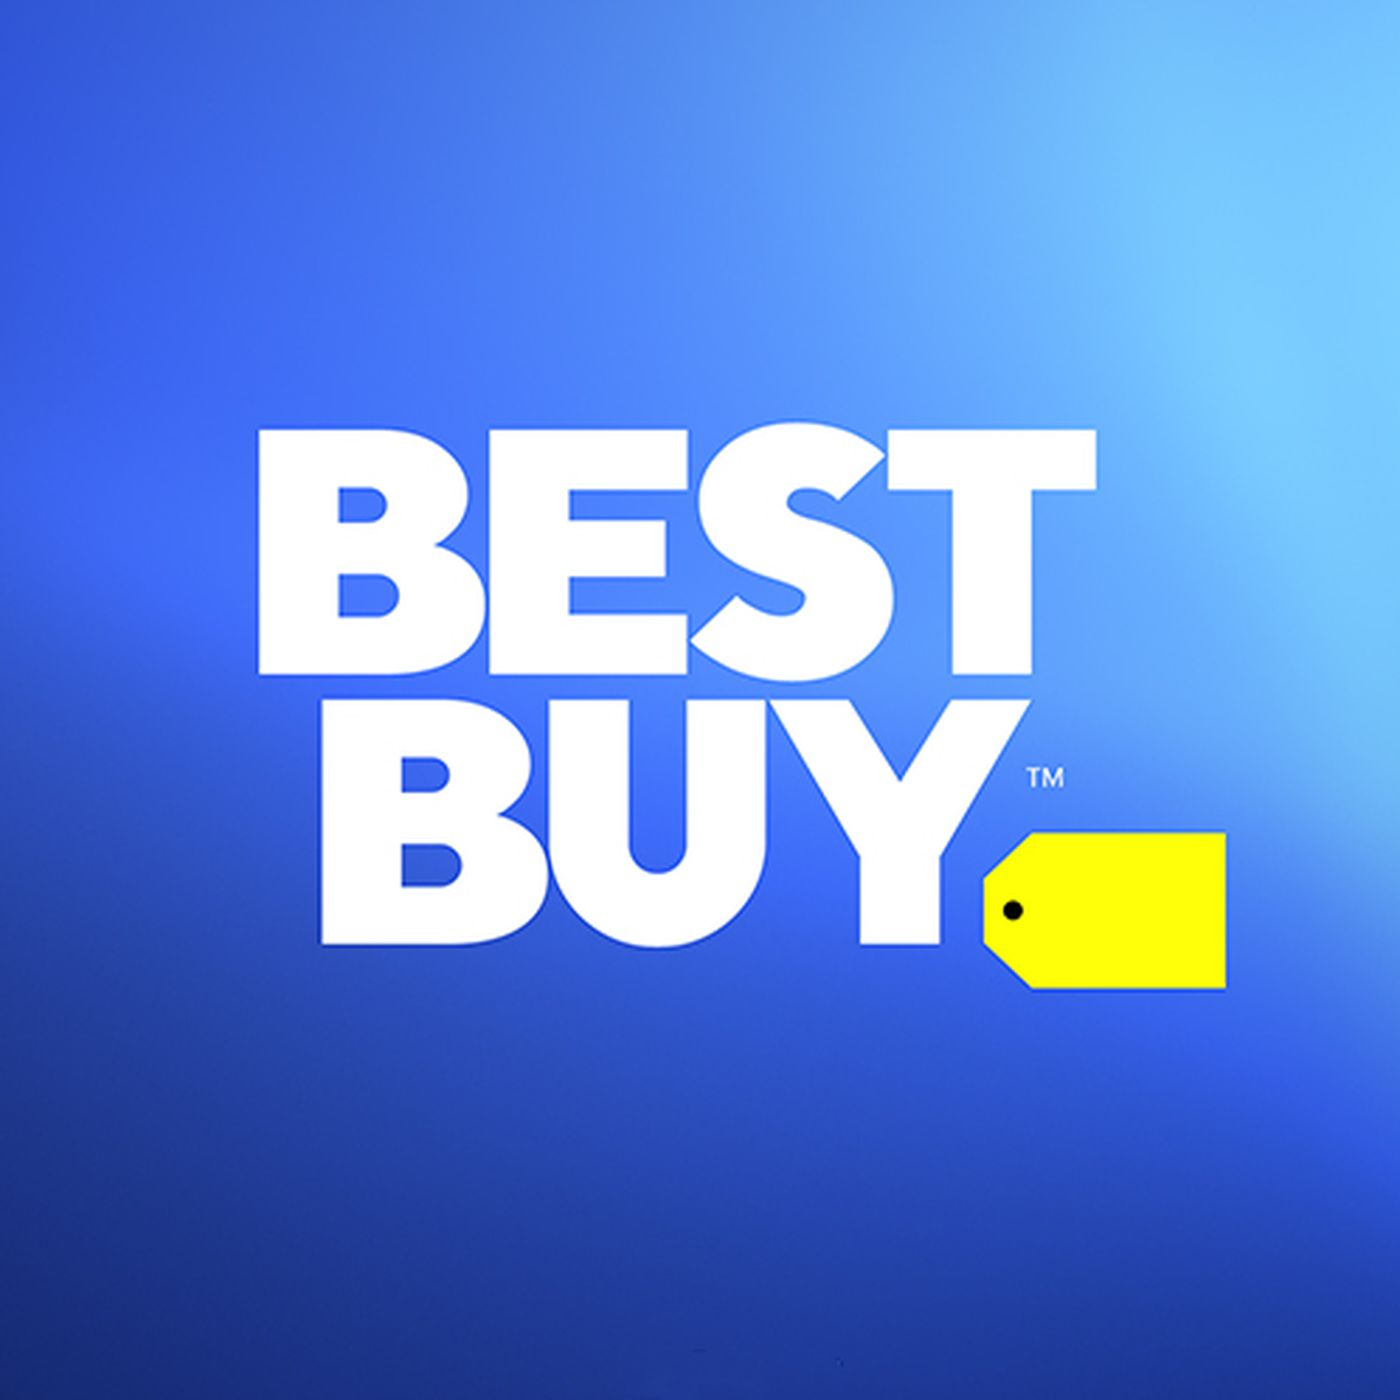 New Best Buy logo diminishes the shopping tag because brick-and-mortar stores are dead - The Verge